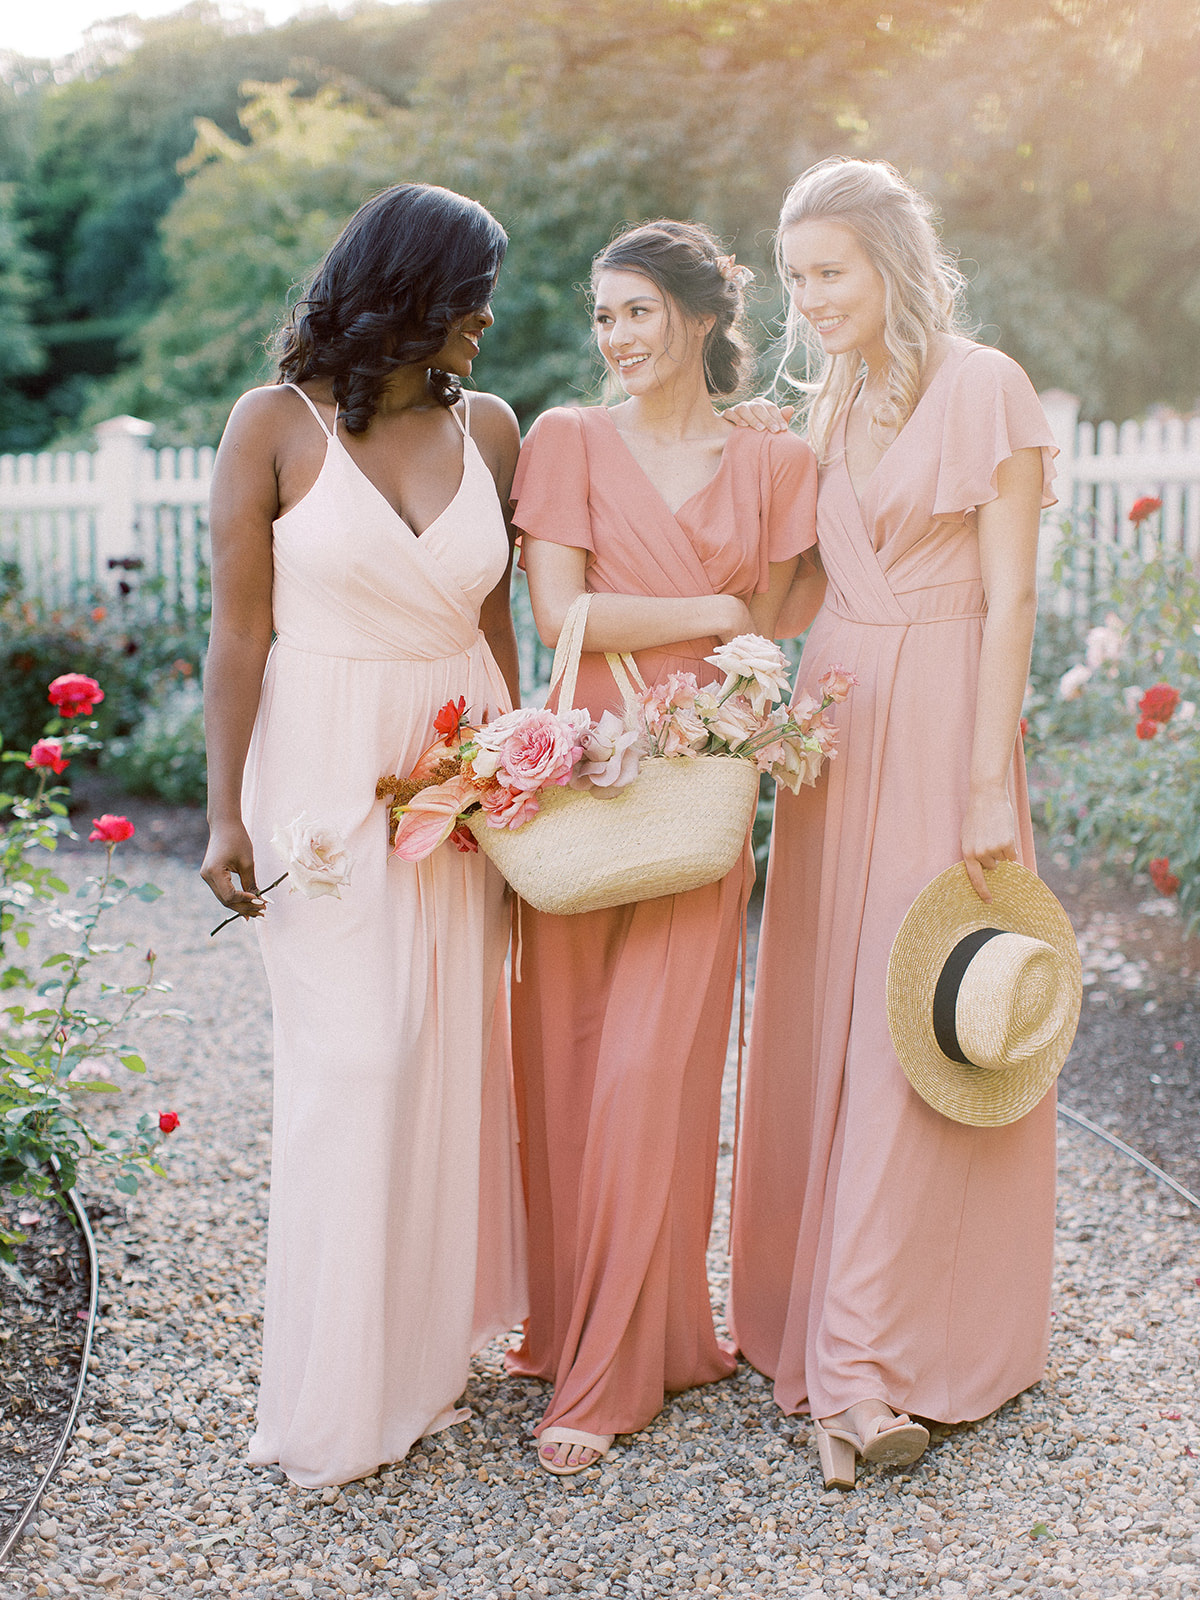 Bridesmaids posing for a group photo wearing David's Bridal gowns in the colors Petal, Sedona, and Ballet for the Summer season.